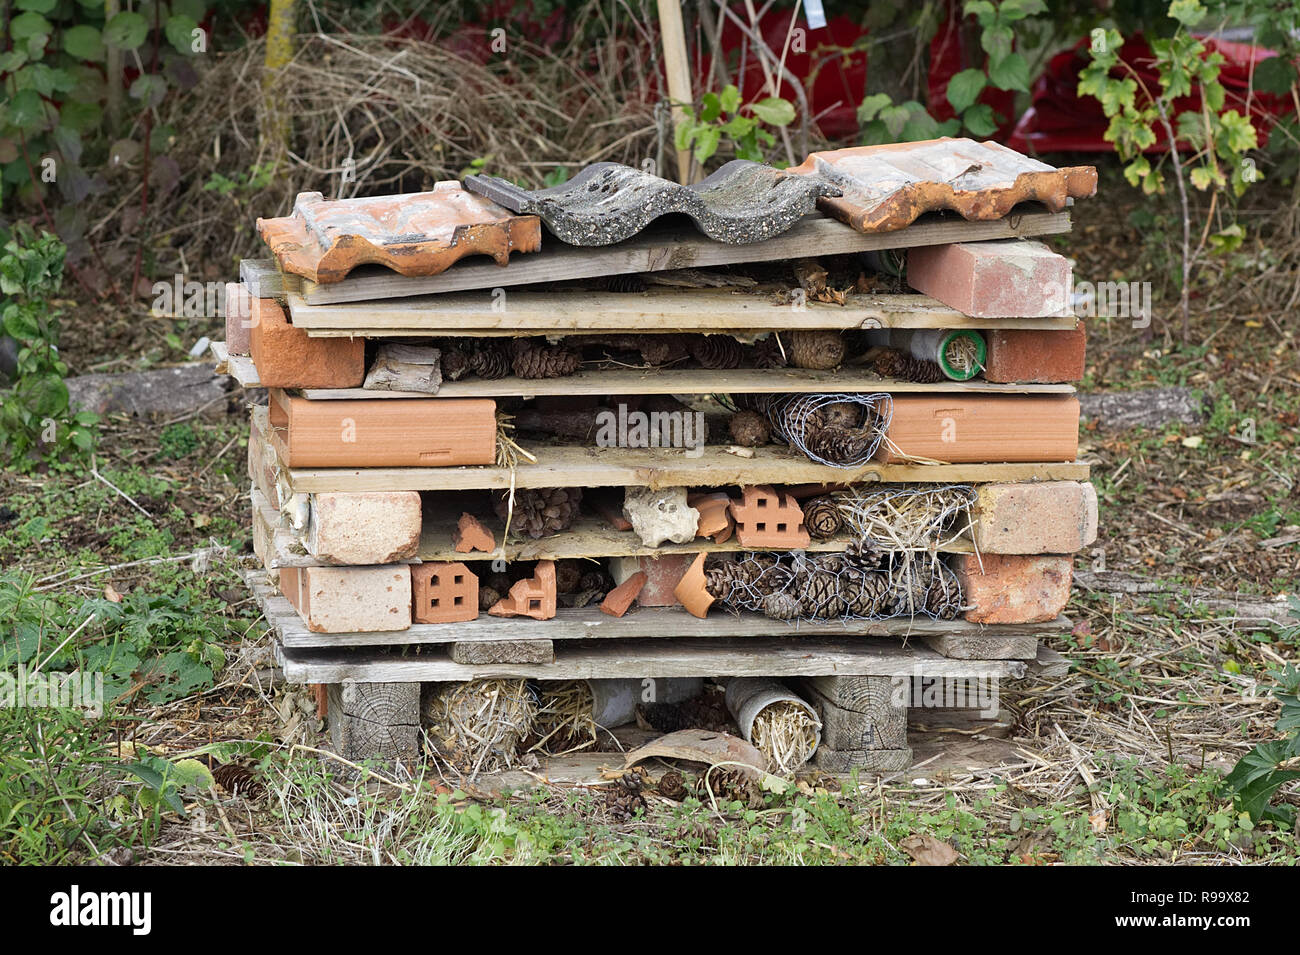 Insect house built from pallets and bricks and recyclable materials - Stock Image